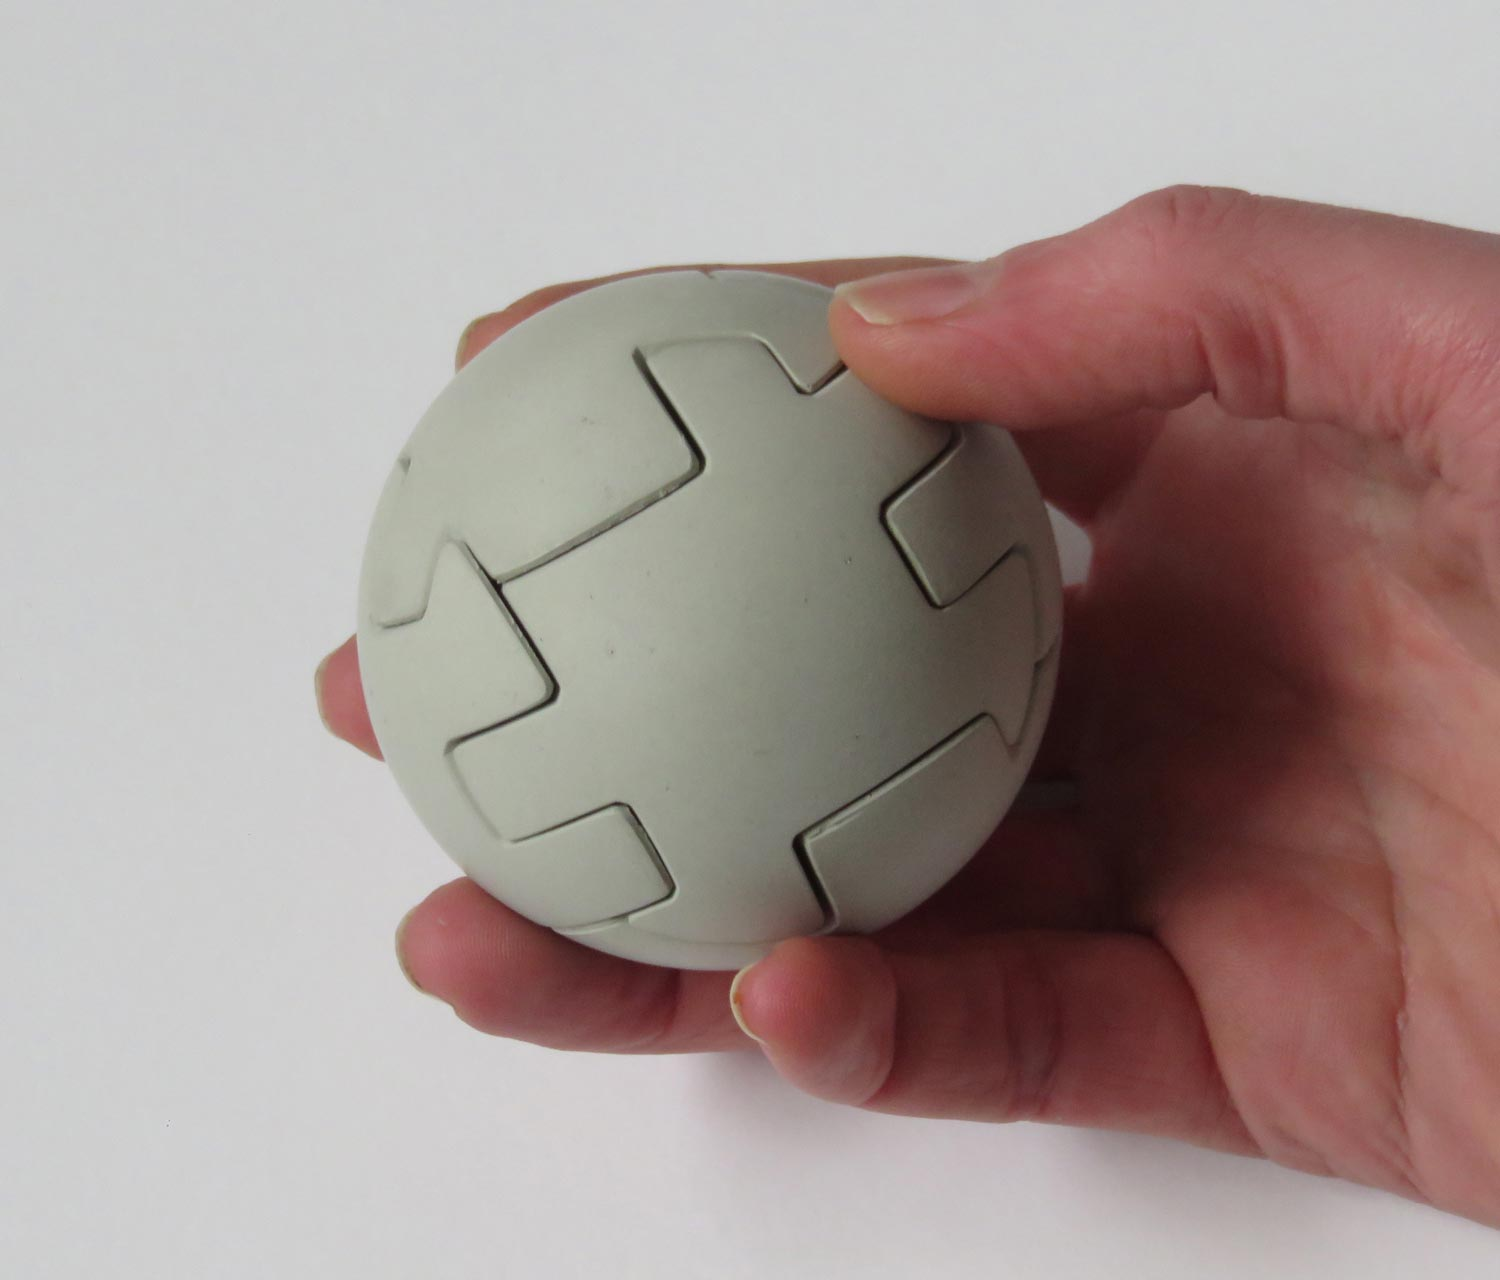 Round ball concrete puzzle business gift